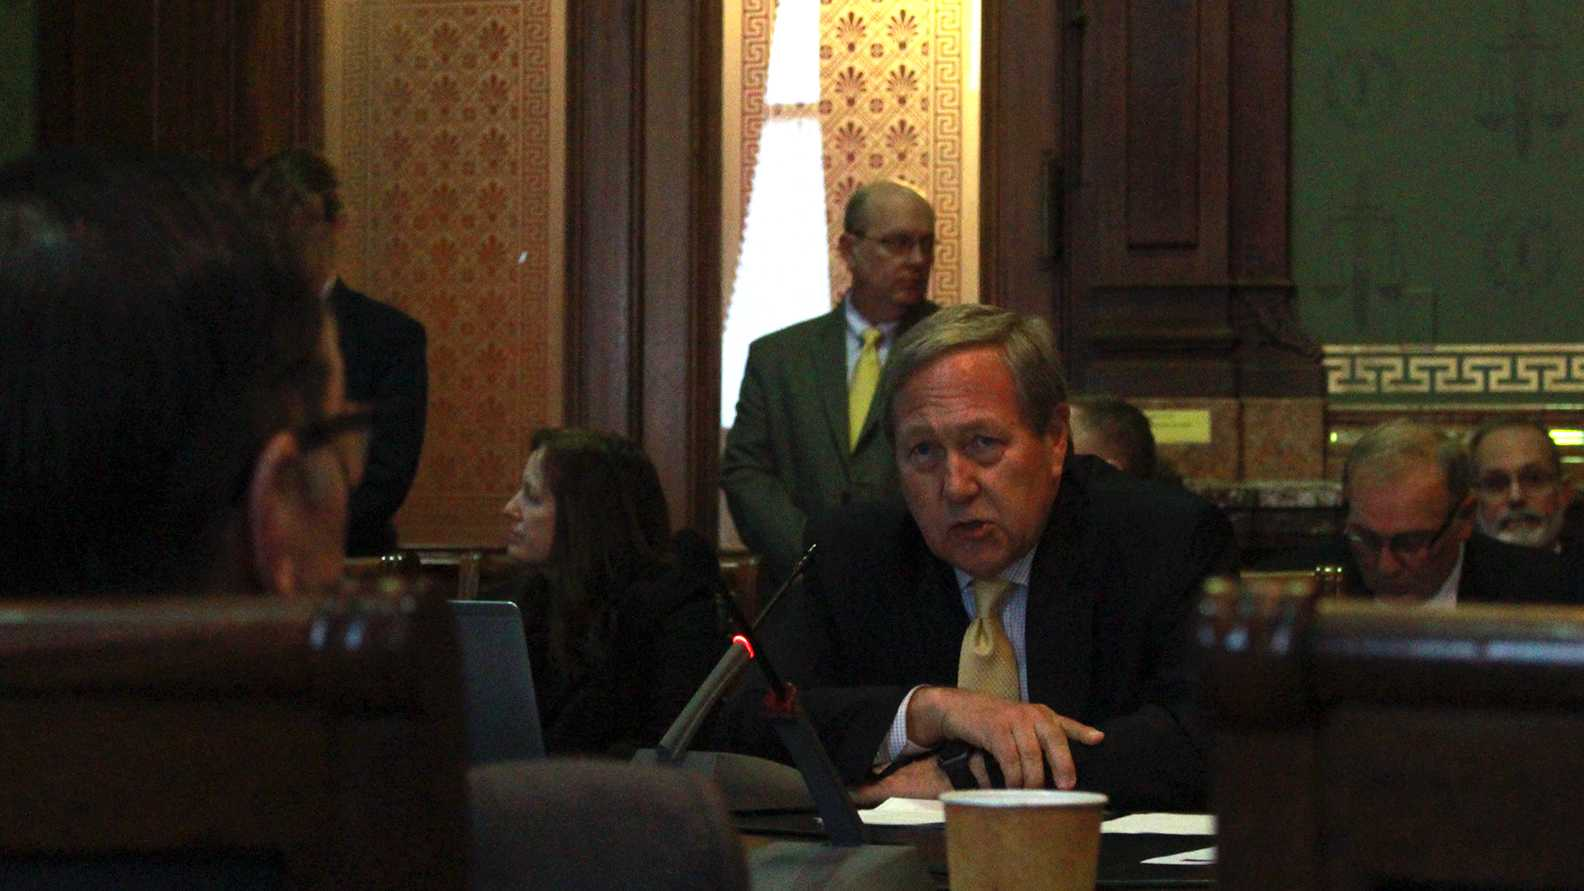 UI President Bruce Harreld testifies to the Iowa House Appropriations Committee on Feb. 21, 2018. The meeting allowed regent university presidents to advocate for the Legislature to fund their institutions' fiscal 2019 appropriations requests. (Marissa Payne/The Daily Iowan)